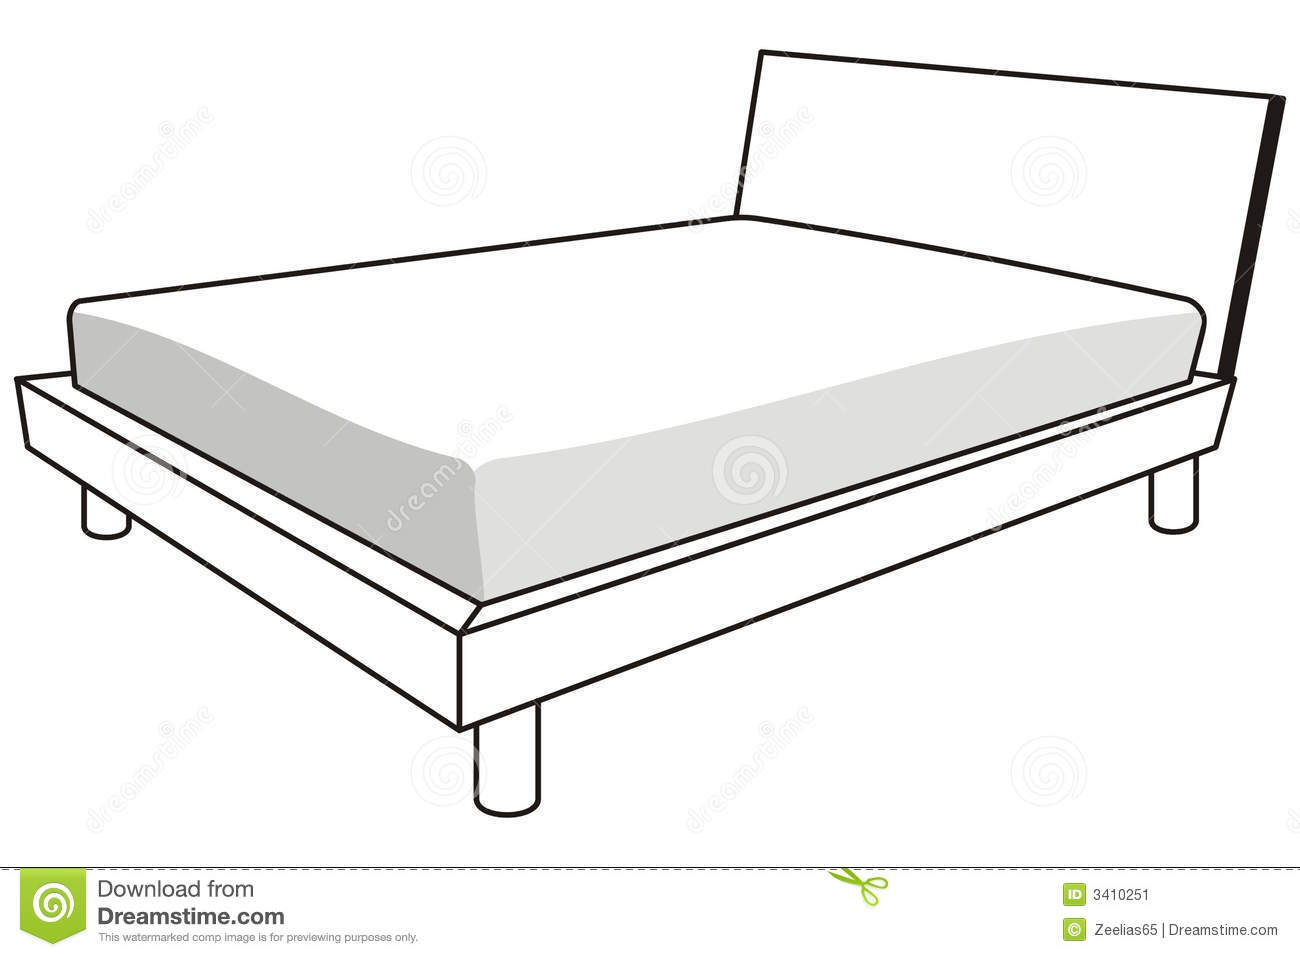 Bed Black And White Clipart - Clipart Suggest